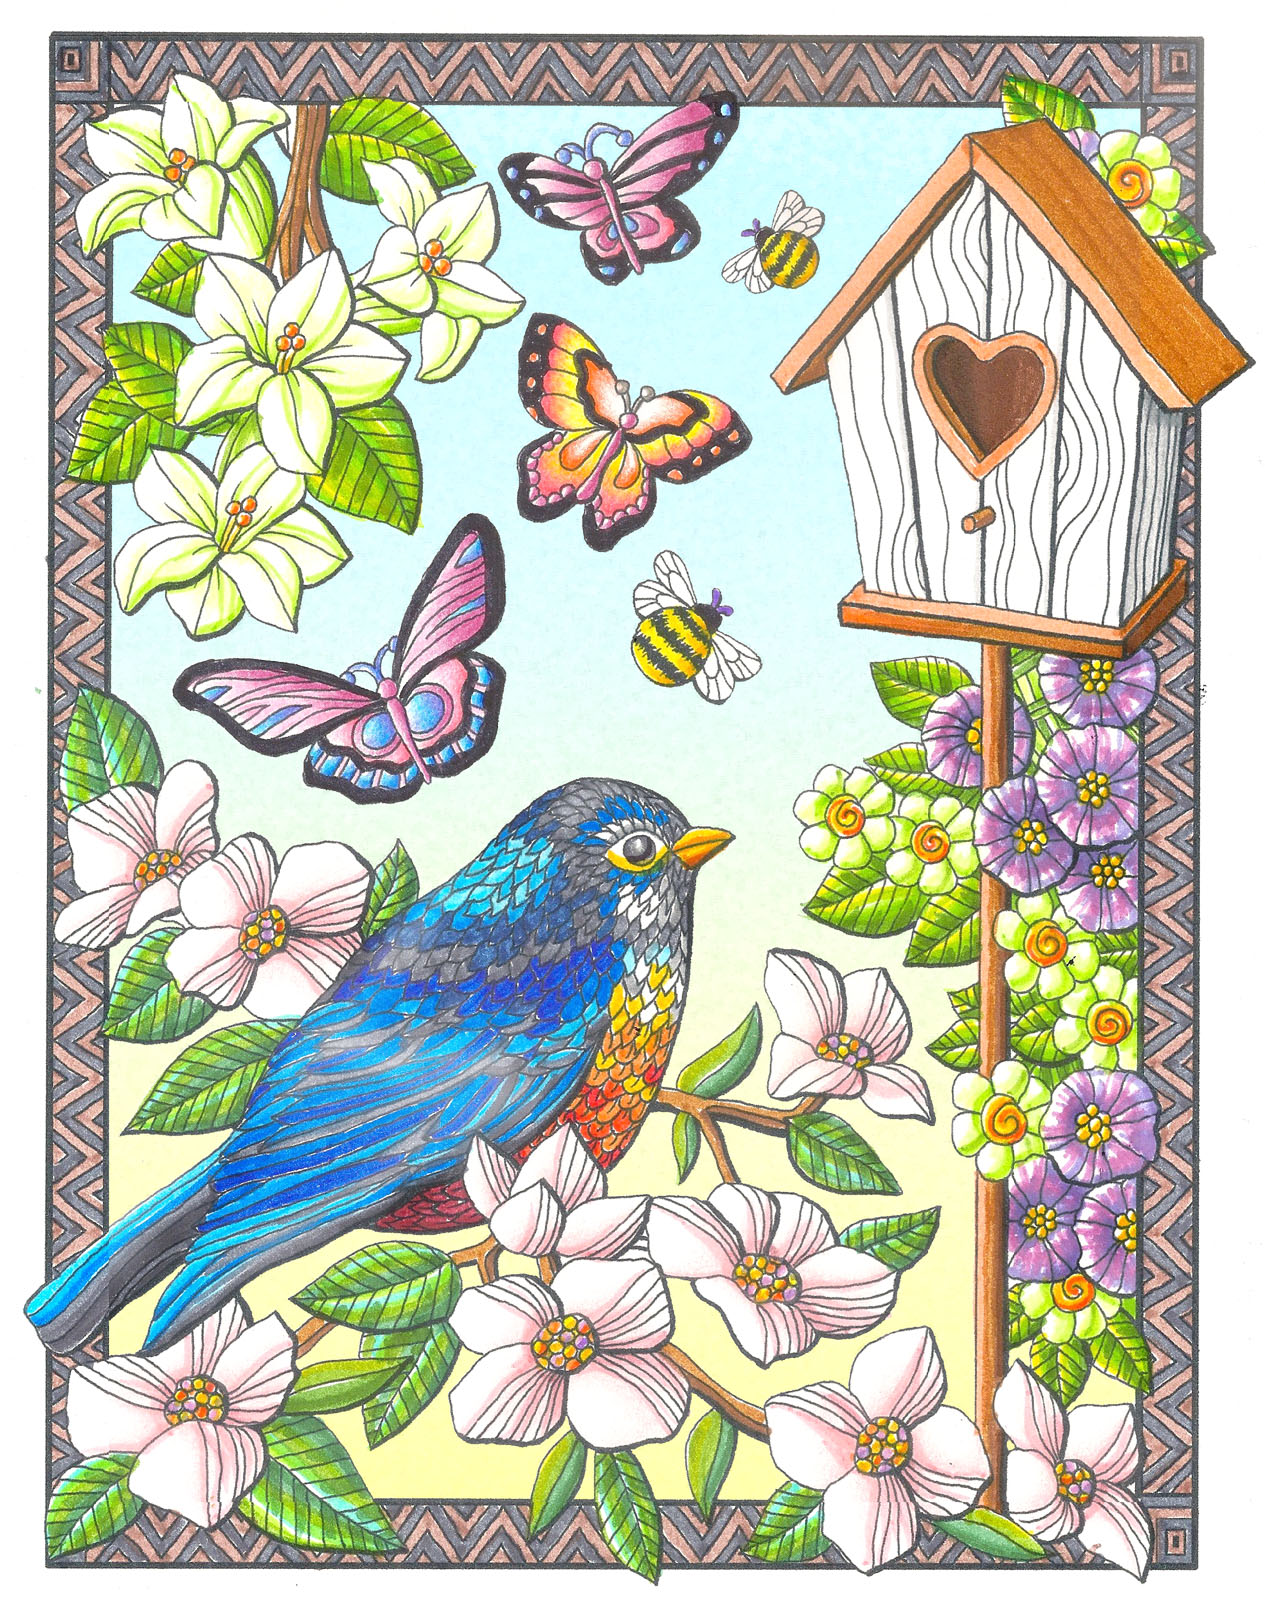 Toms Birds and Bees color.jpg